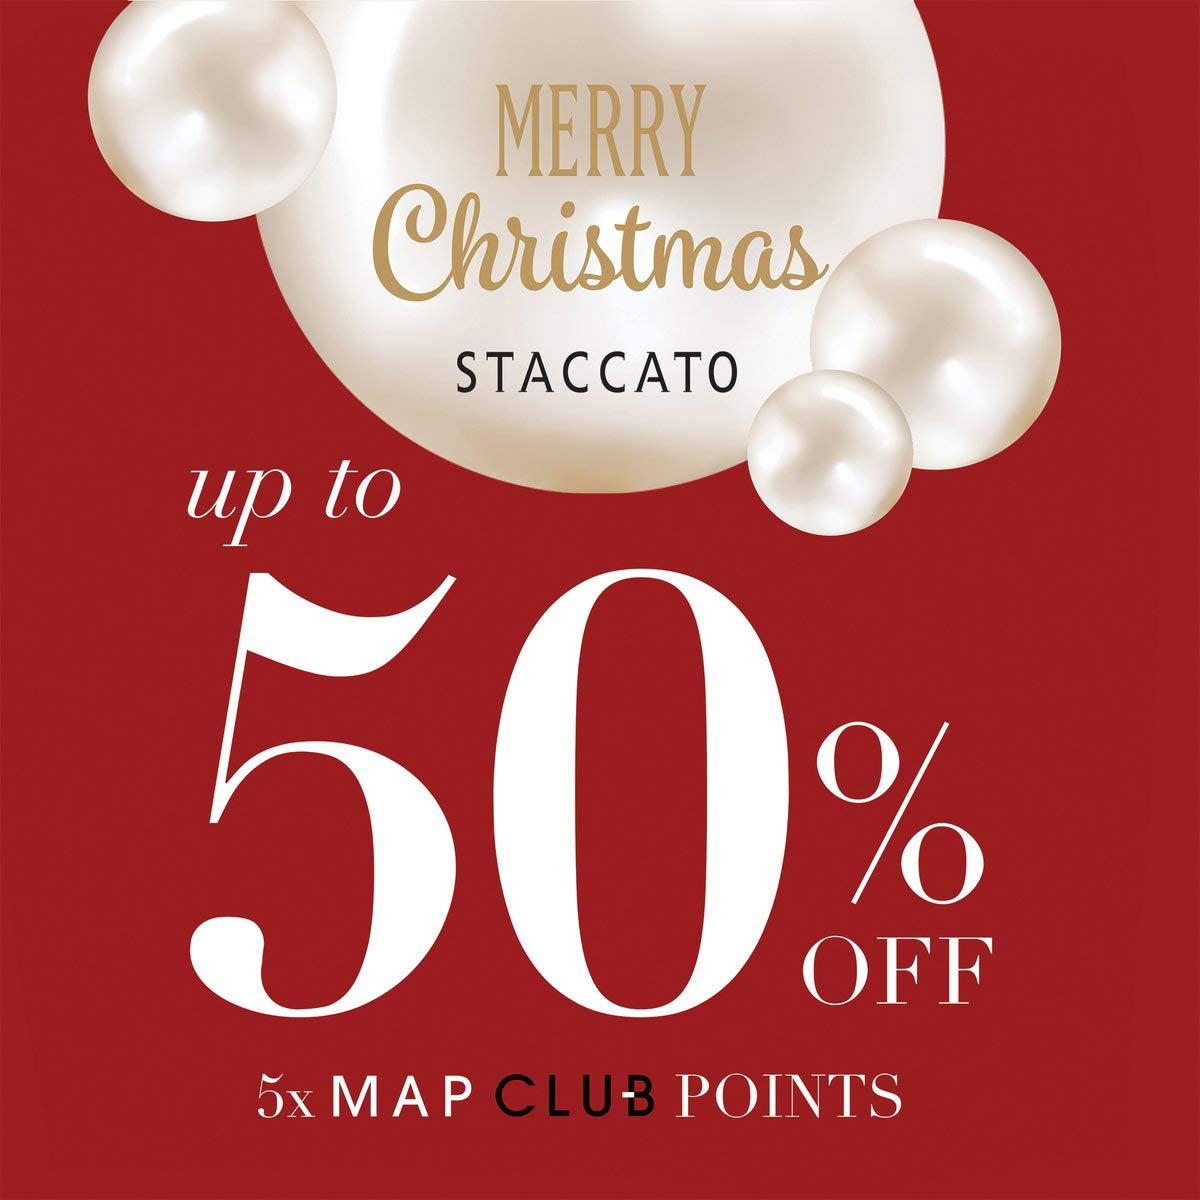 Discount Up to 50% from Staccato